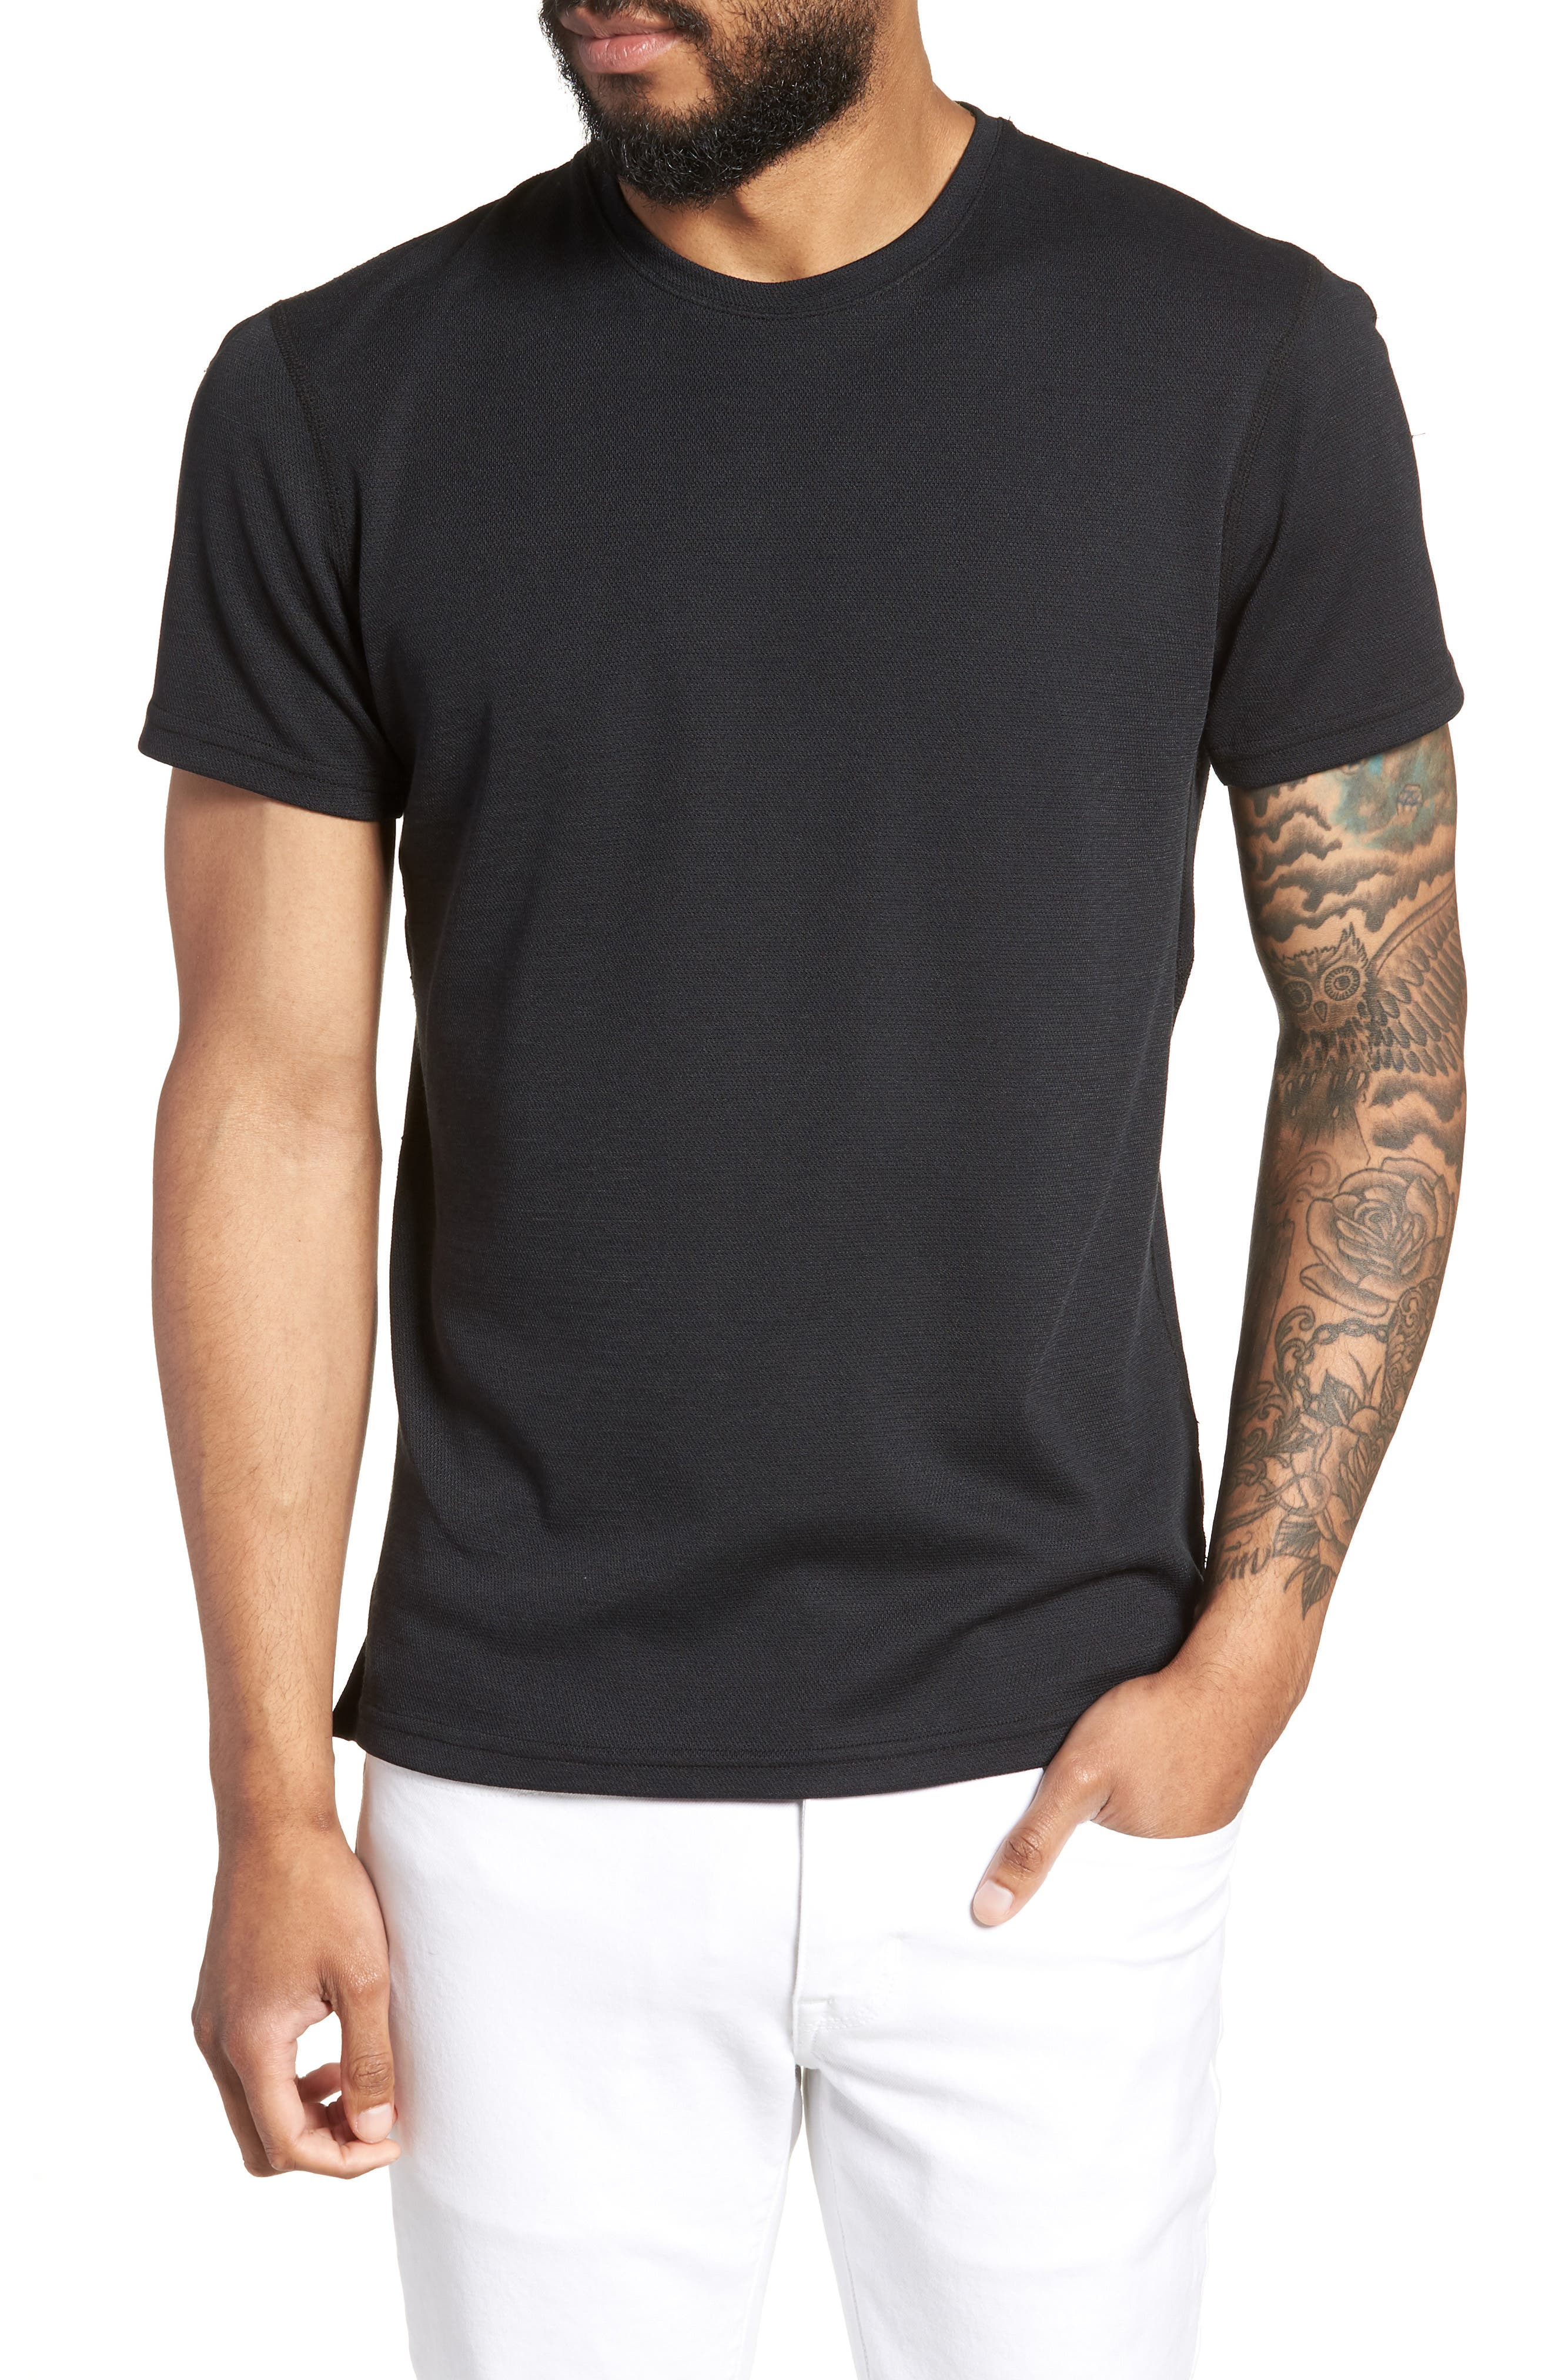 REIGNING CHAMP POWER DRY T-SHIRT